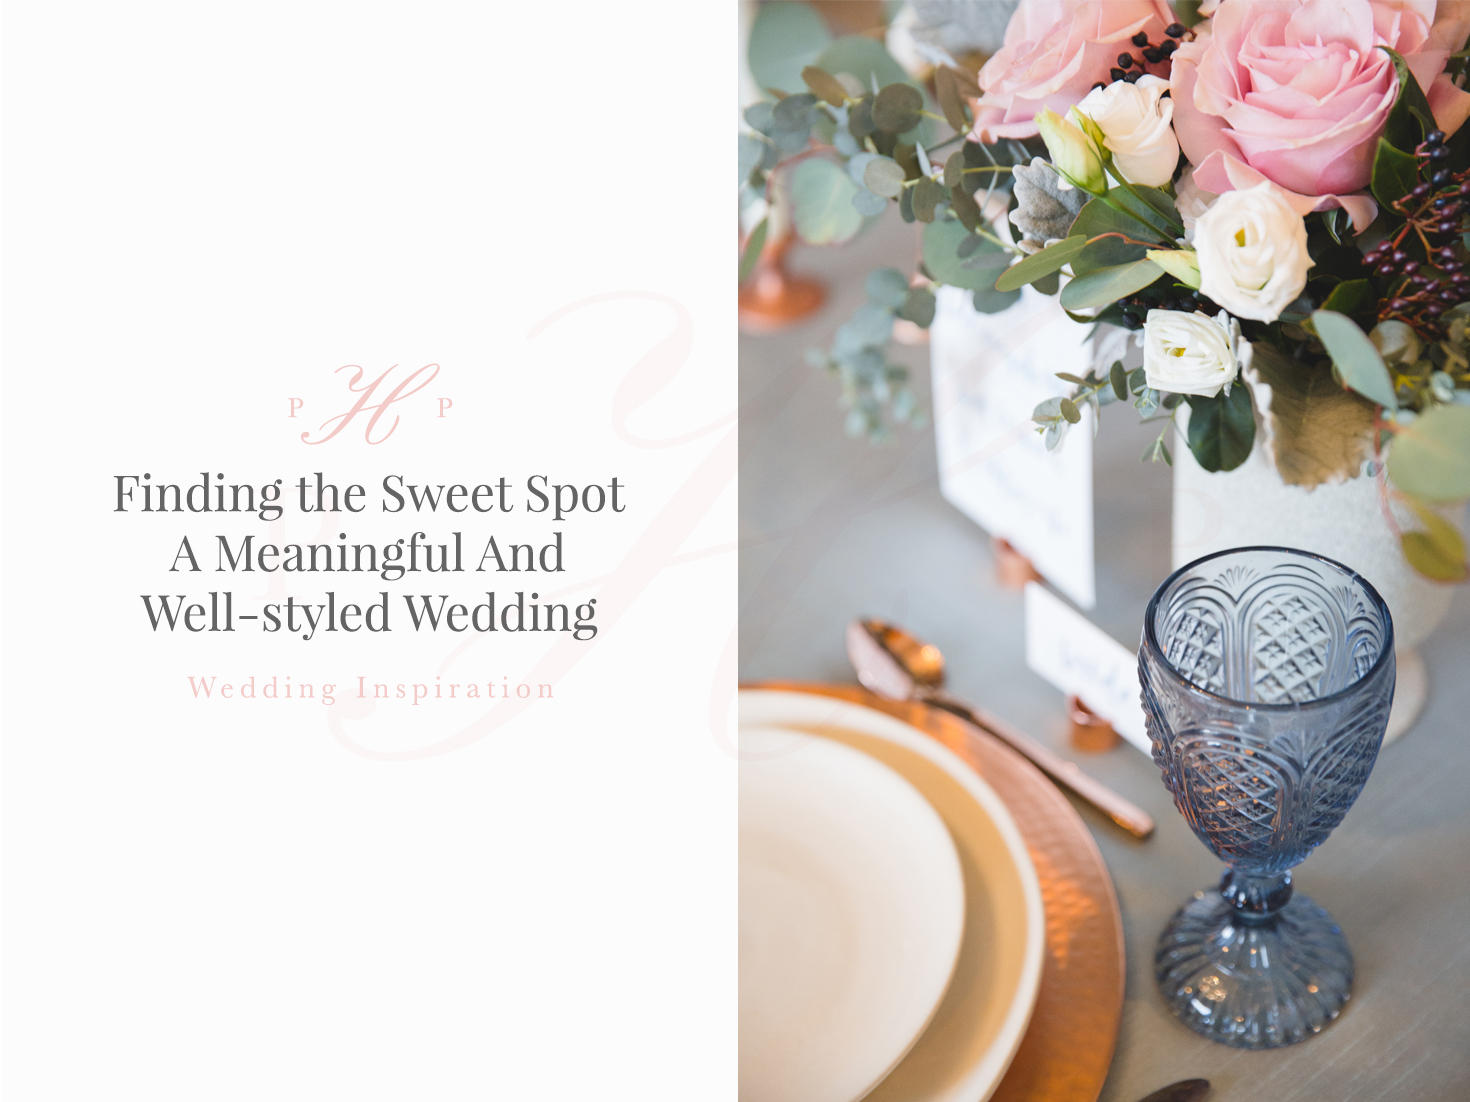 Finding the Sweet Spot: A Meaningful and Well-styled Wedding